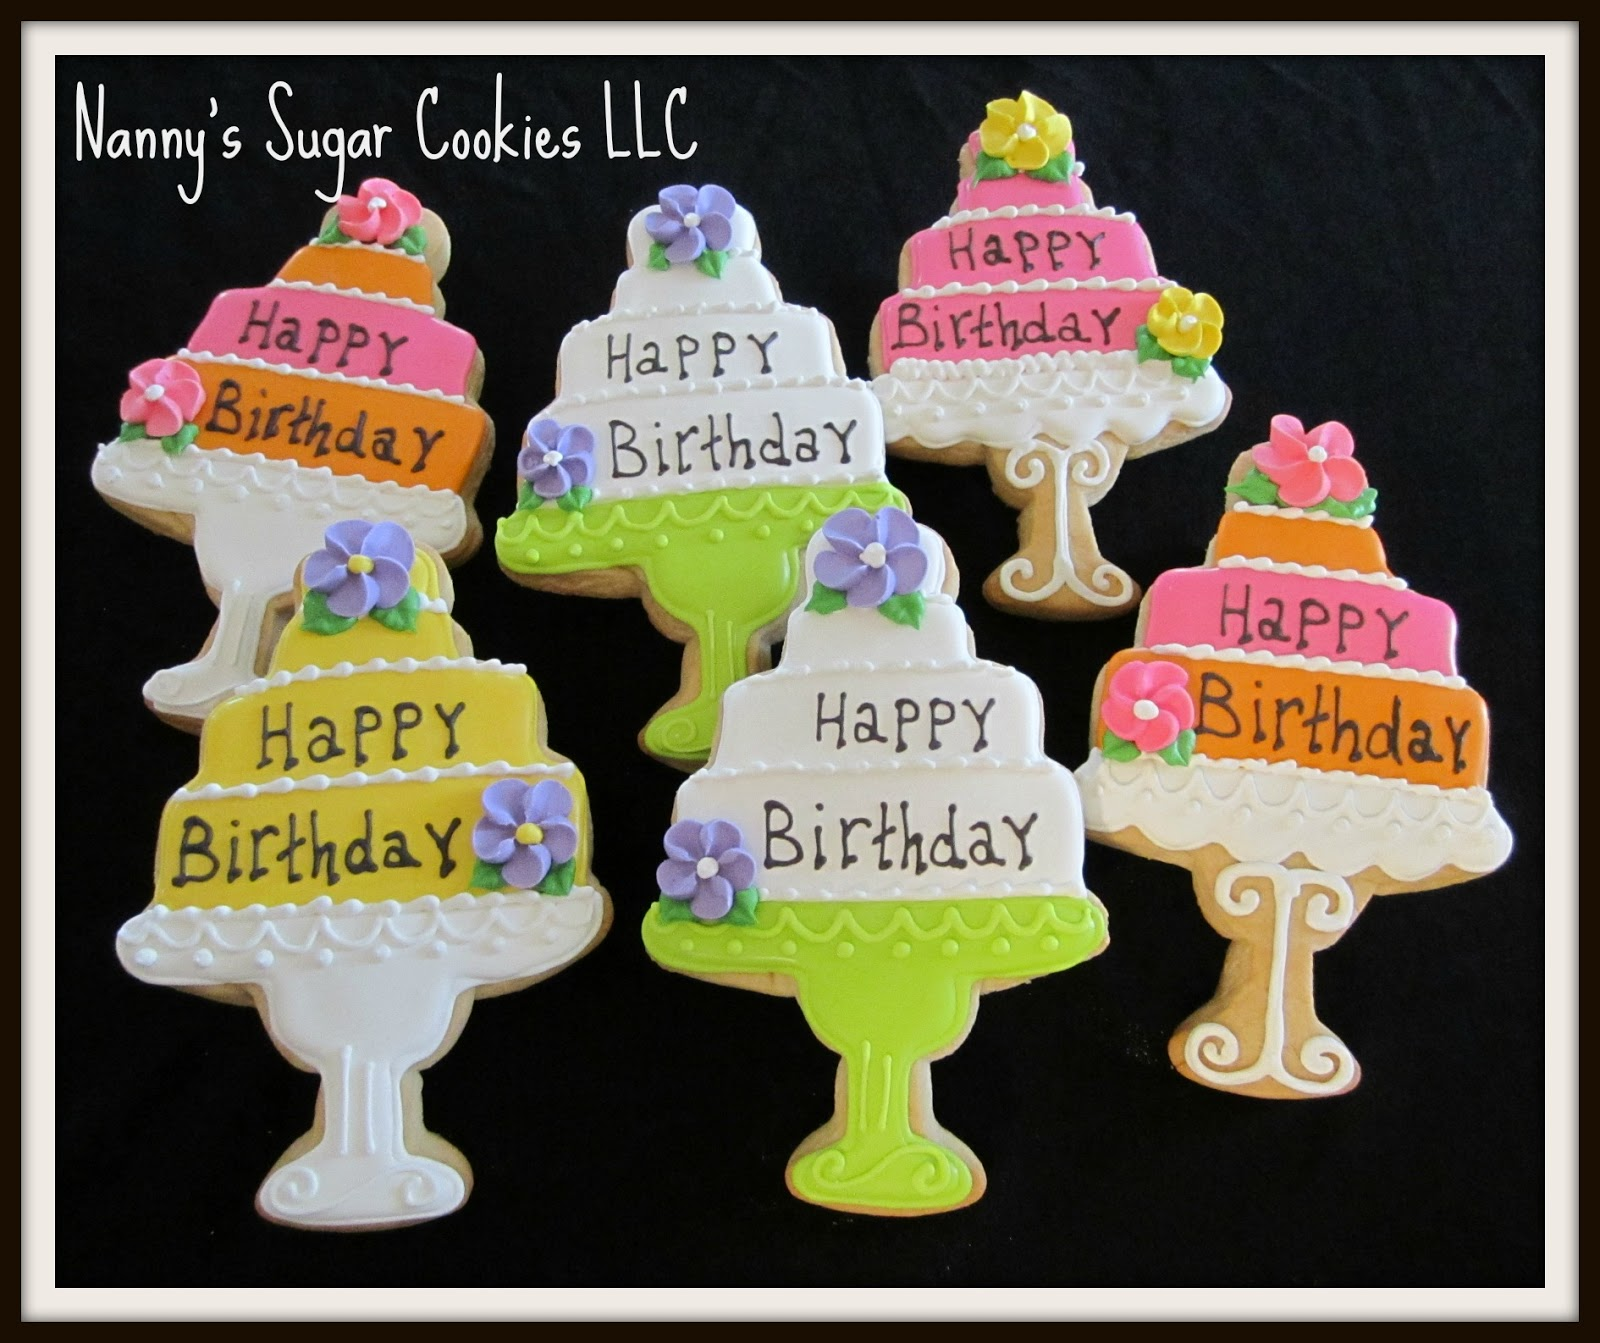 Nanny's Sugar Cookies LLC: Happy Birthday To You